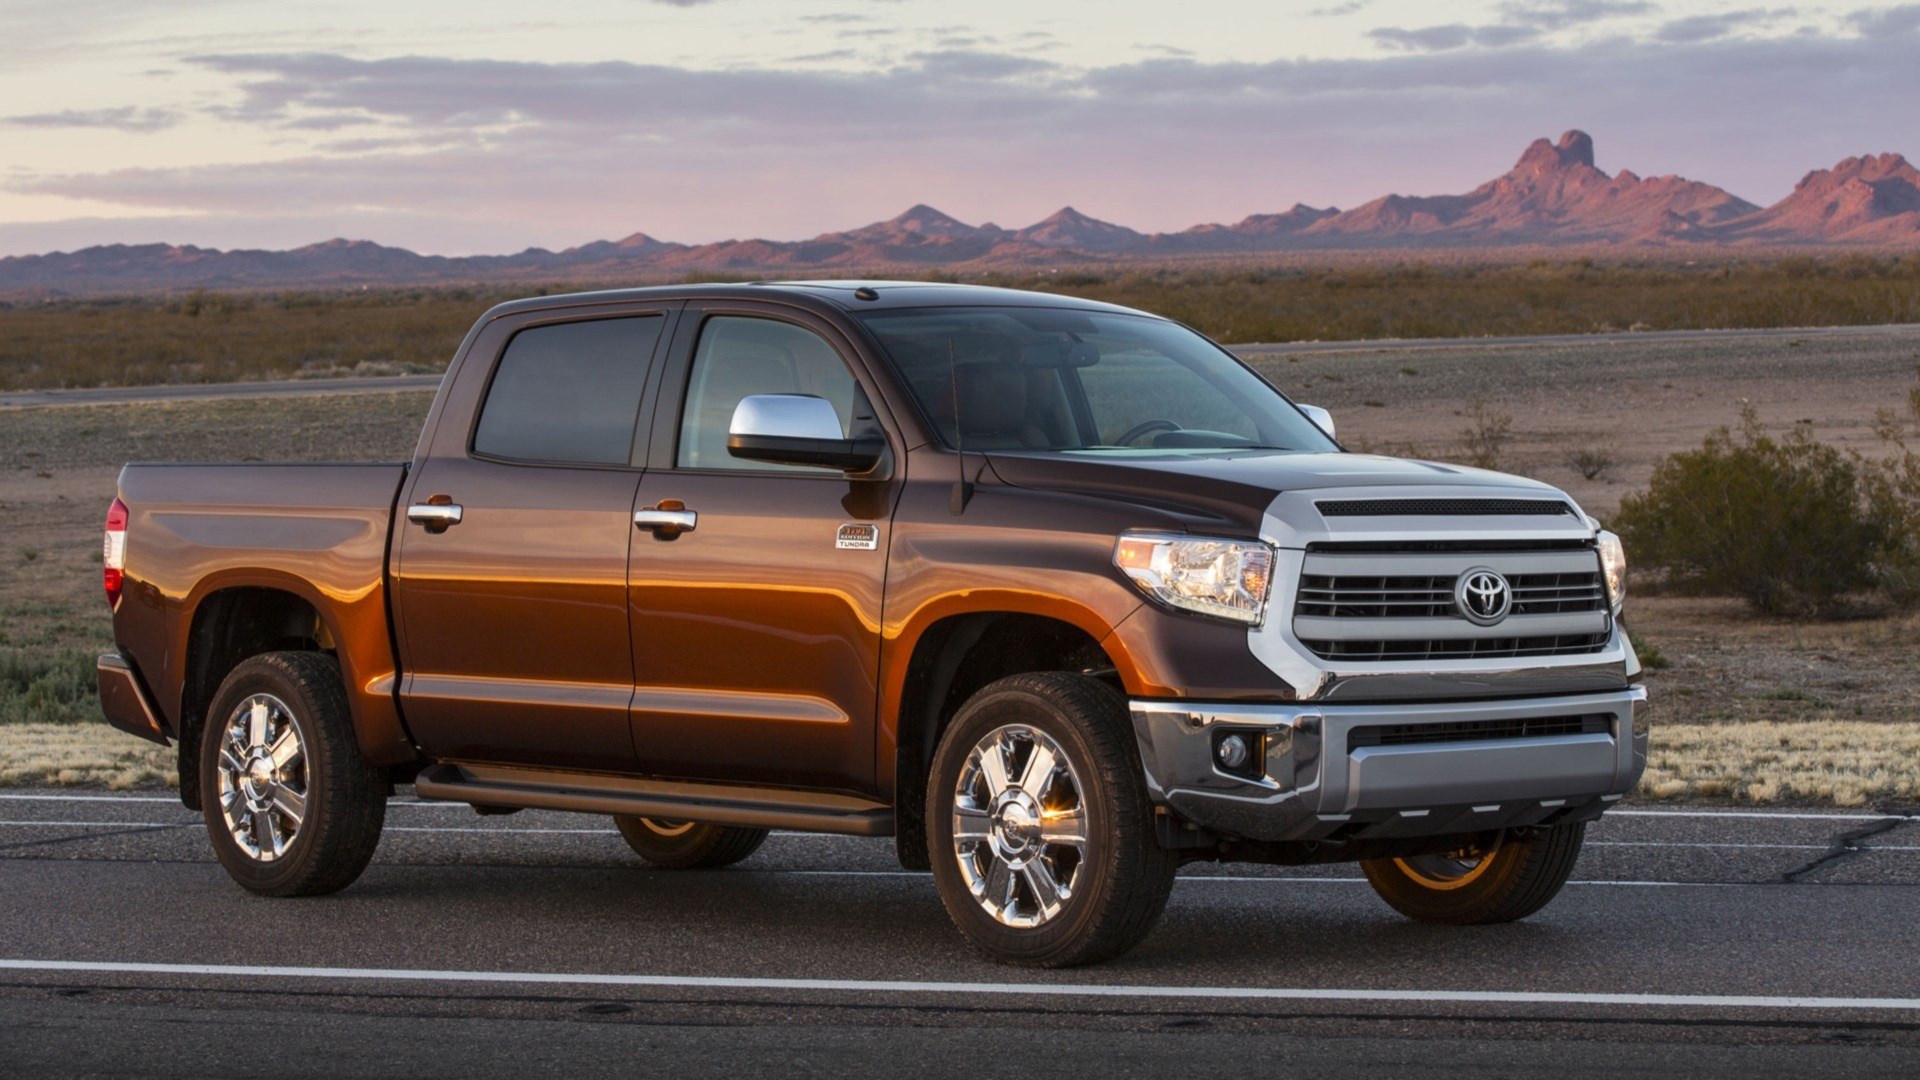 1920x1080-px-for-Desktop-toyota-tundra-pic-by-Lamb-Nash-Williams-for-pocketfullofgrace-wallpaper-wp340902